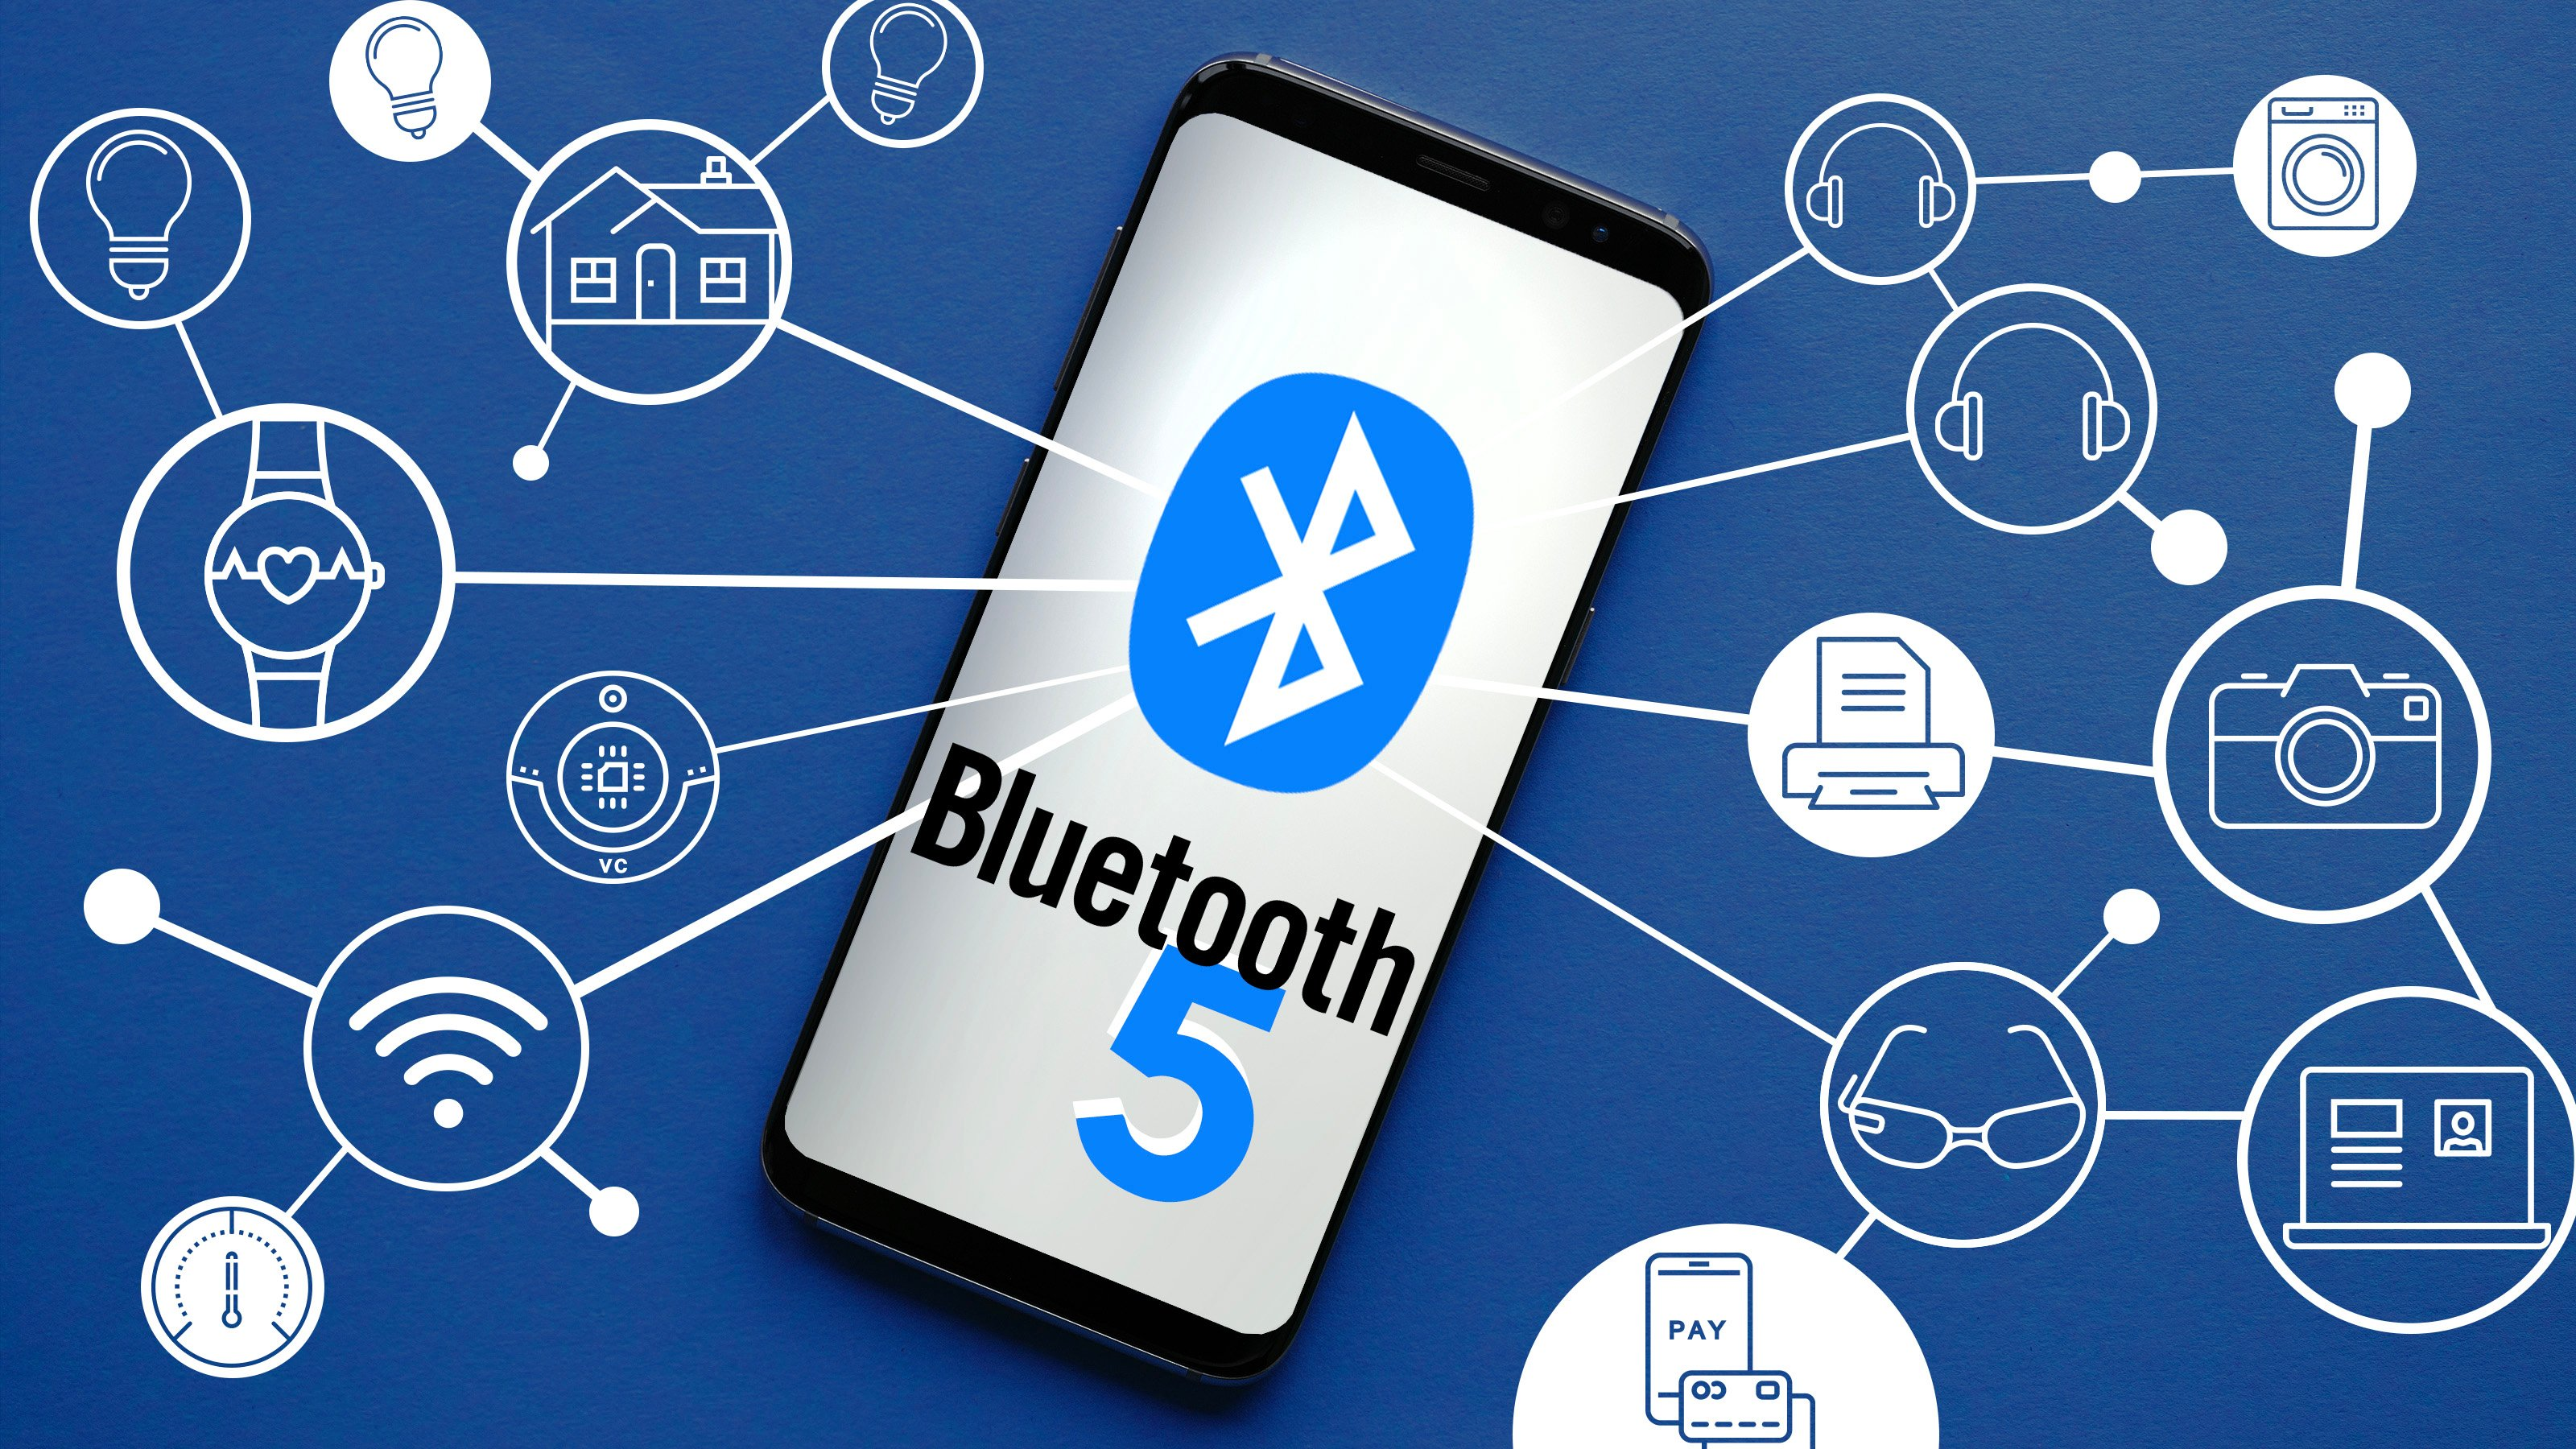 You should ditch any smartphone without Bluetooth 5 ...